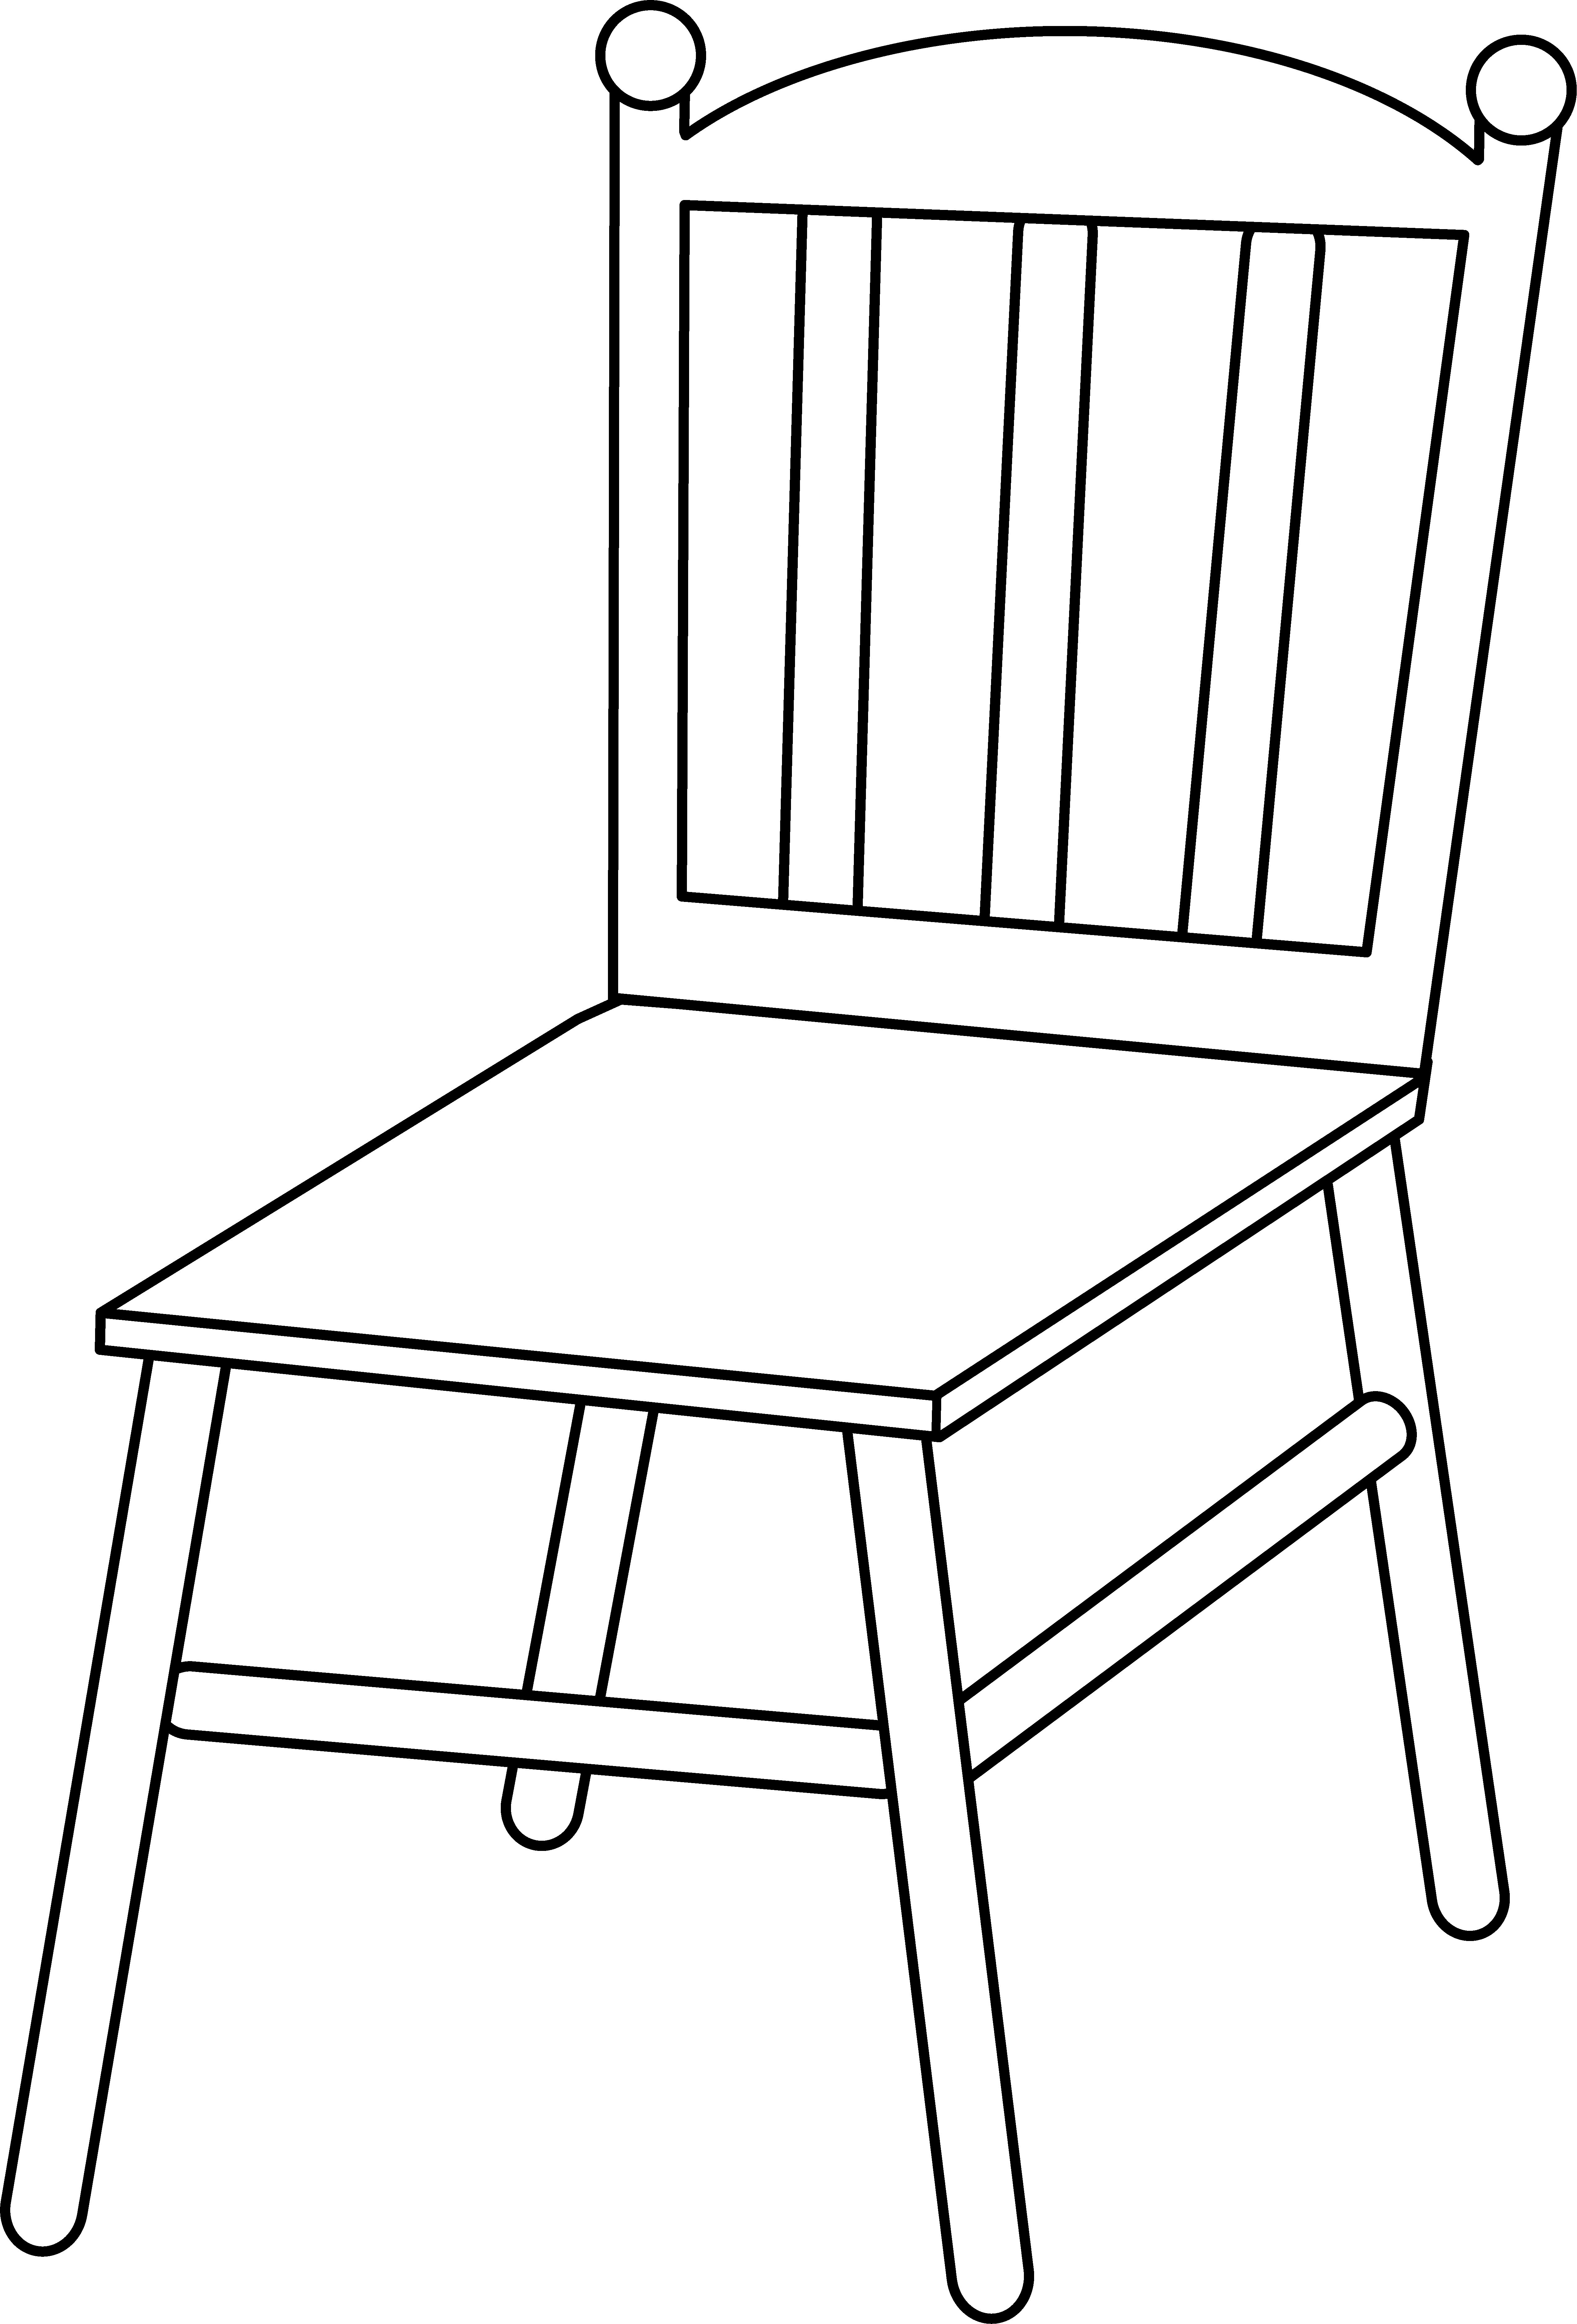 Armchair drawing kid. Chair black and white